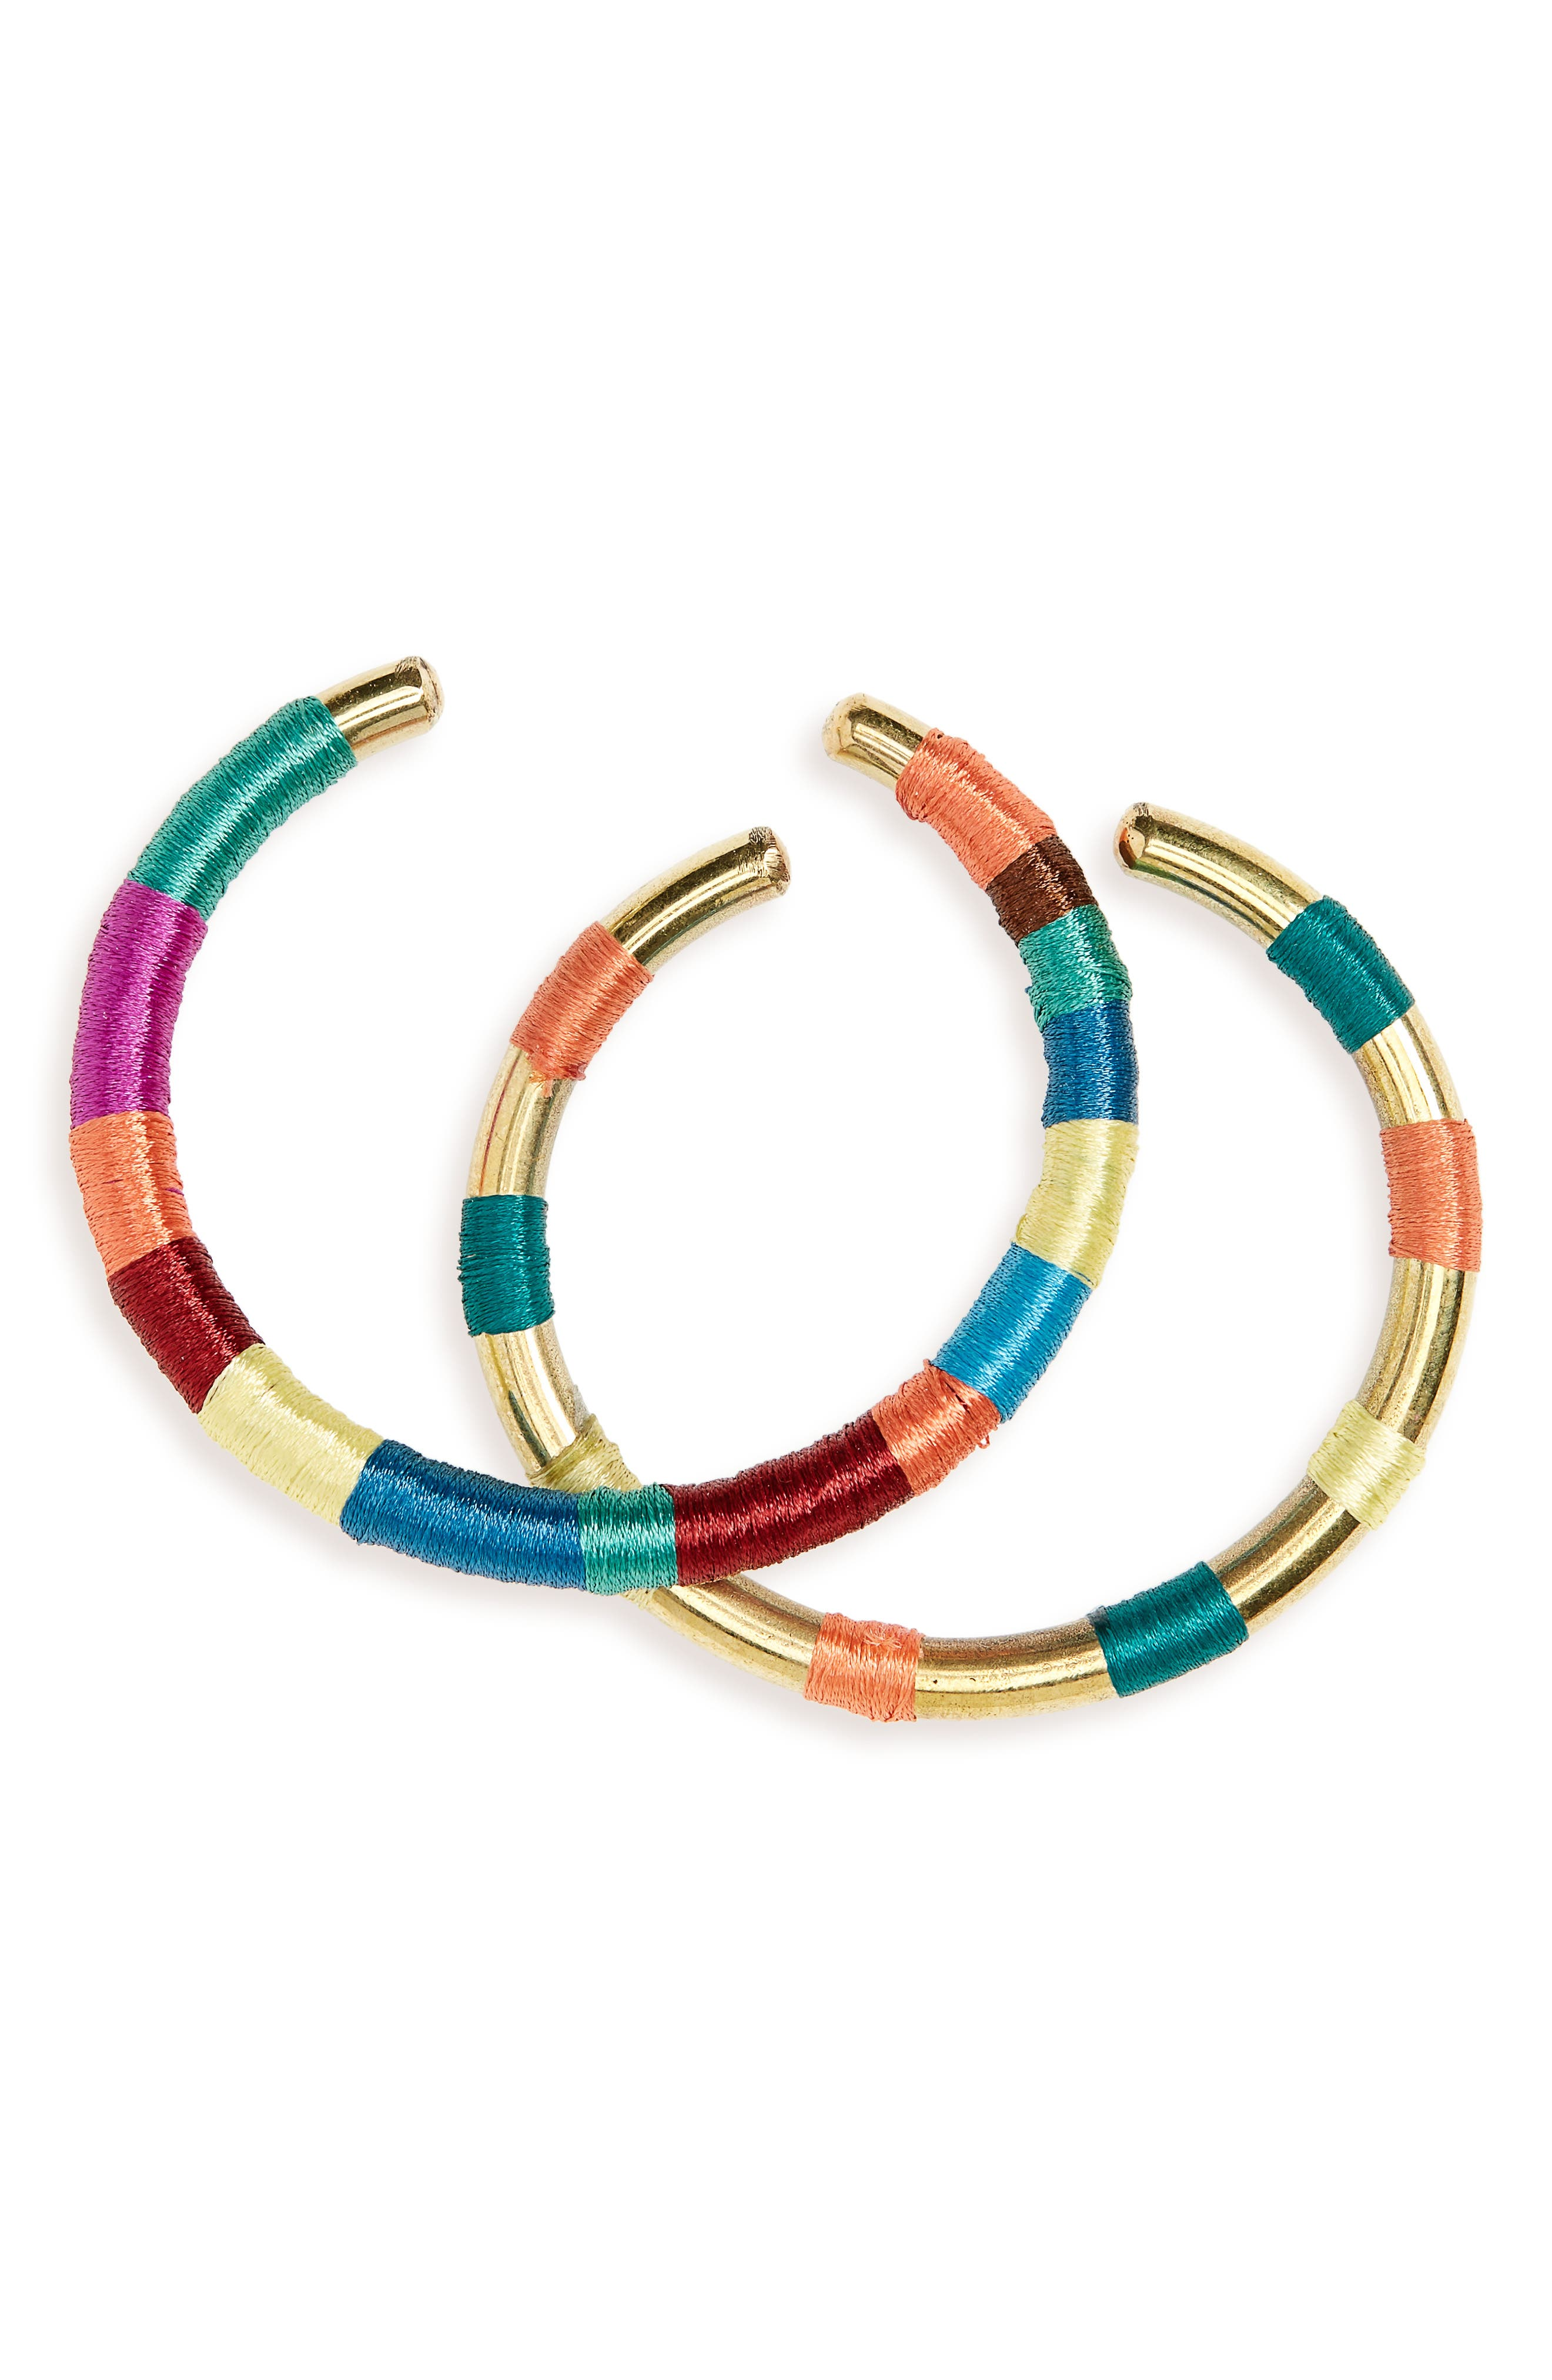 Panacea Set of 2 Cuff Bracelets